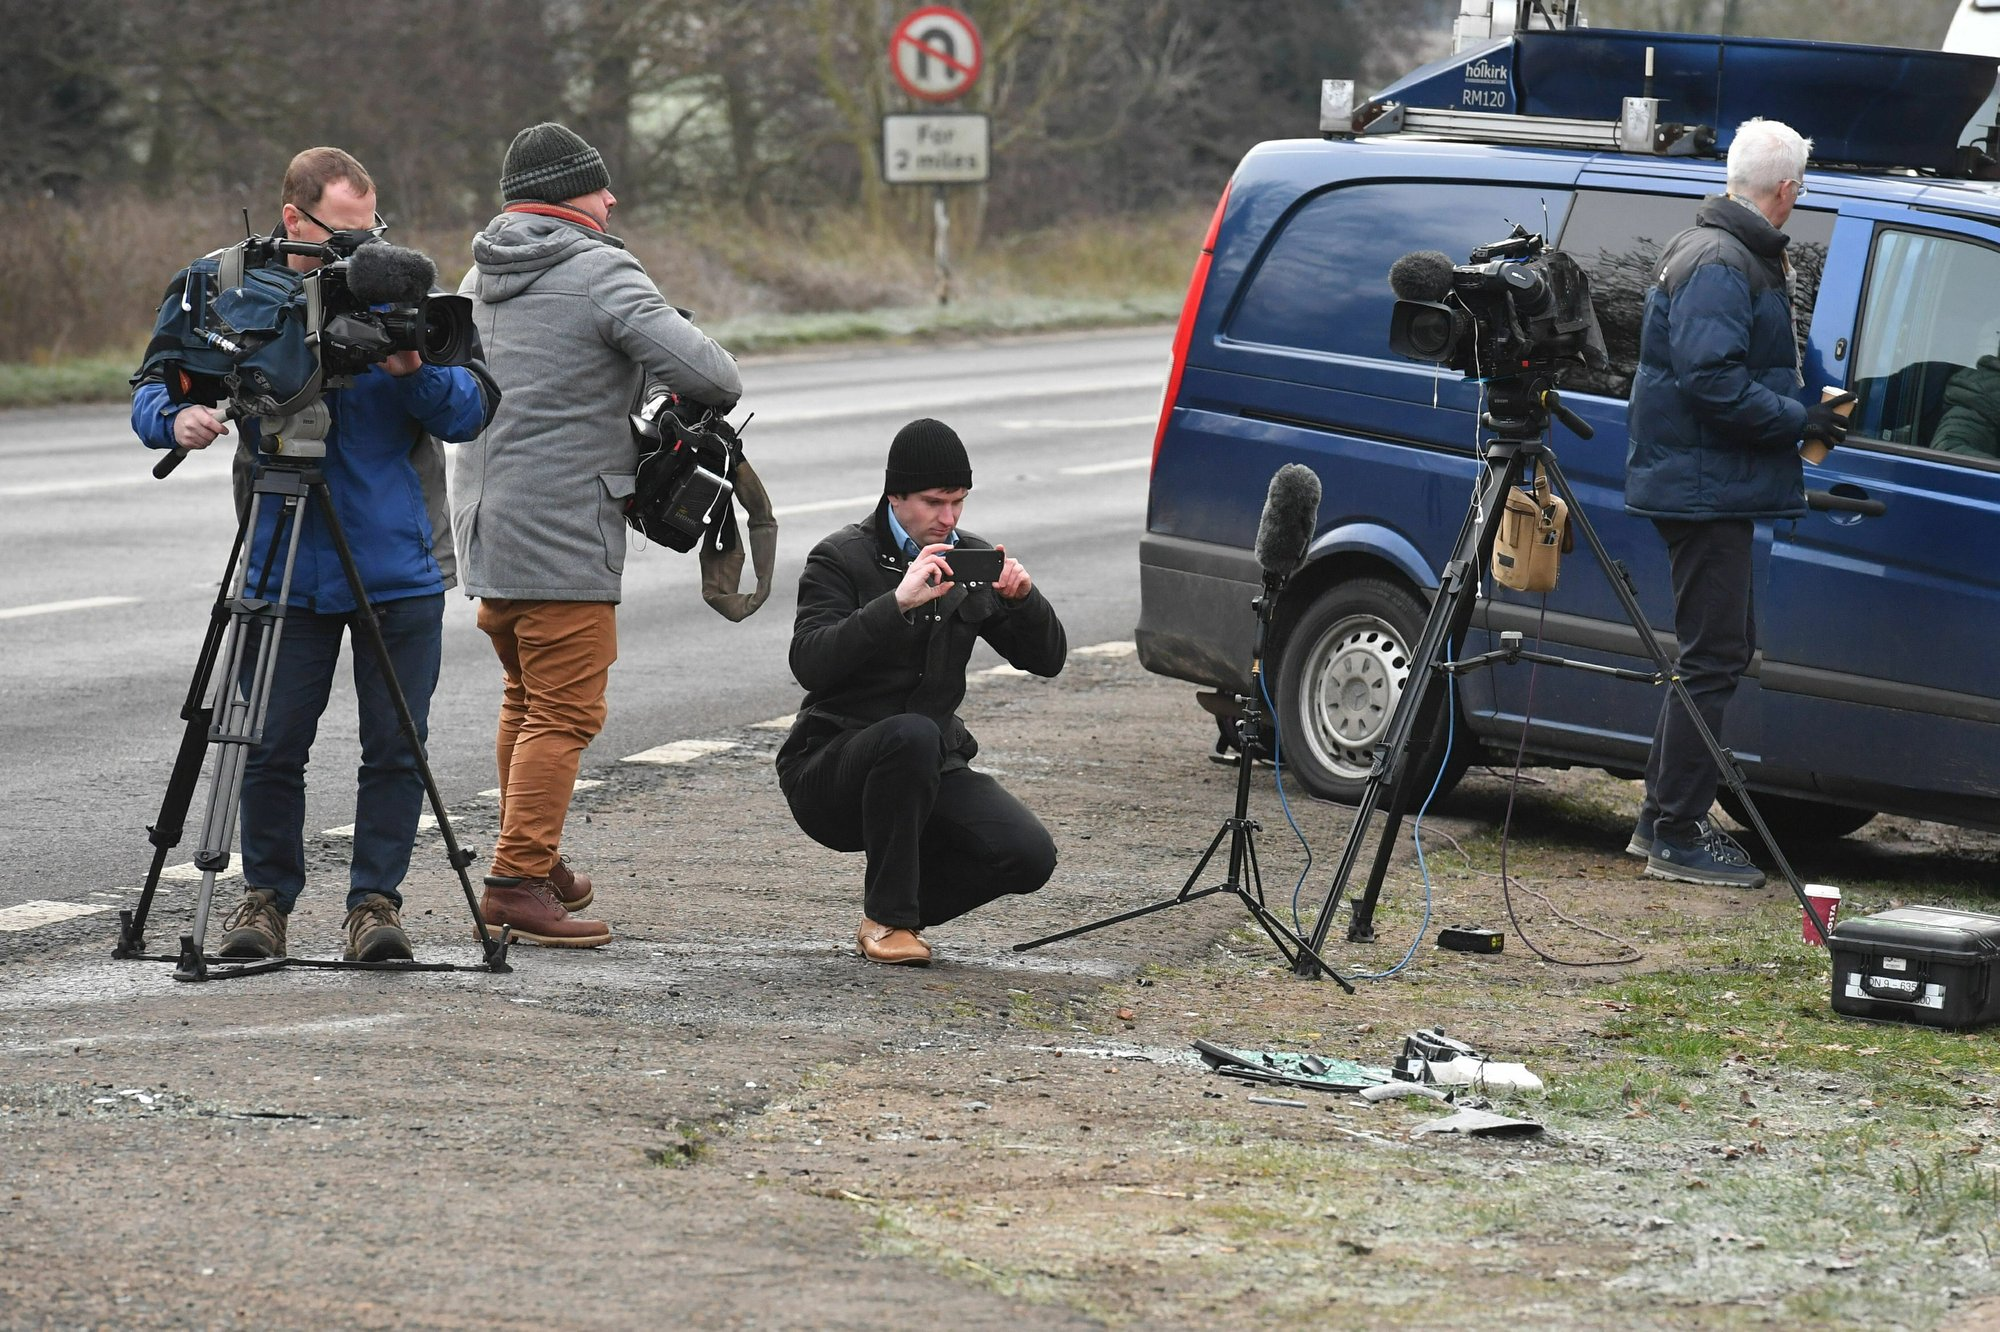 News media film broken glass and car parts on the road side near to the Sandringham Estate, England, where Prince Philip was involved in a road accident late Thursday while he was driving, on Friday Jan. 18, 2019. Photo: AP